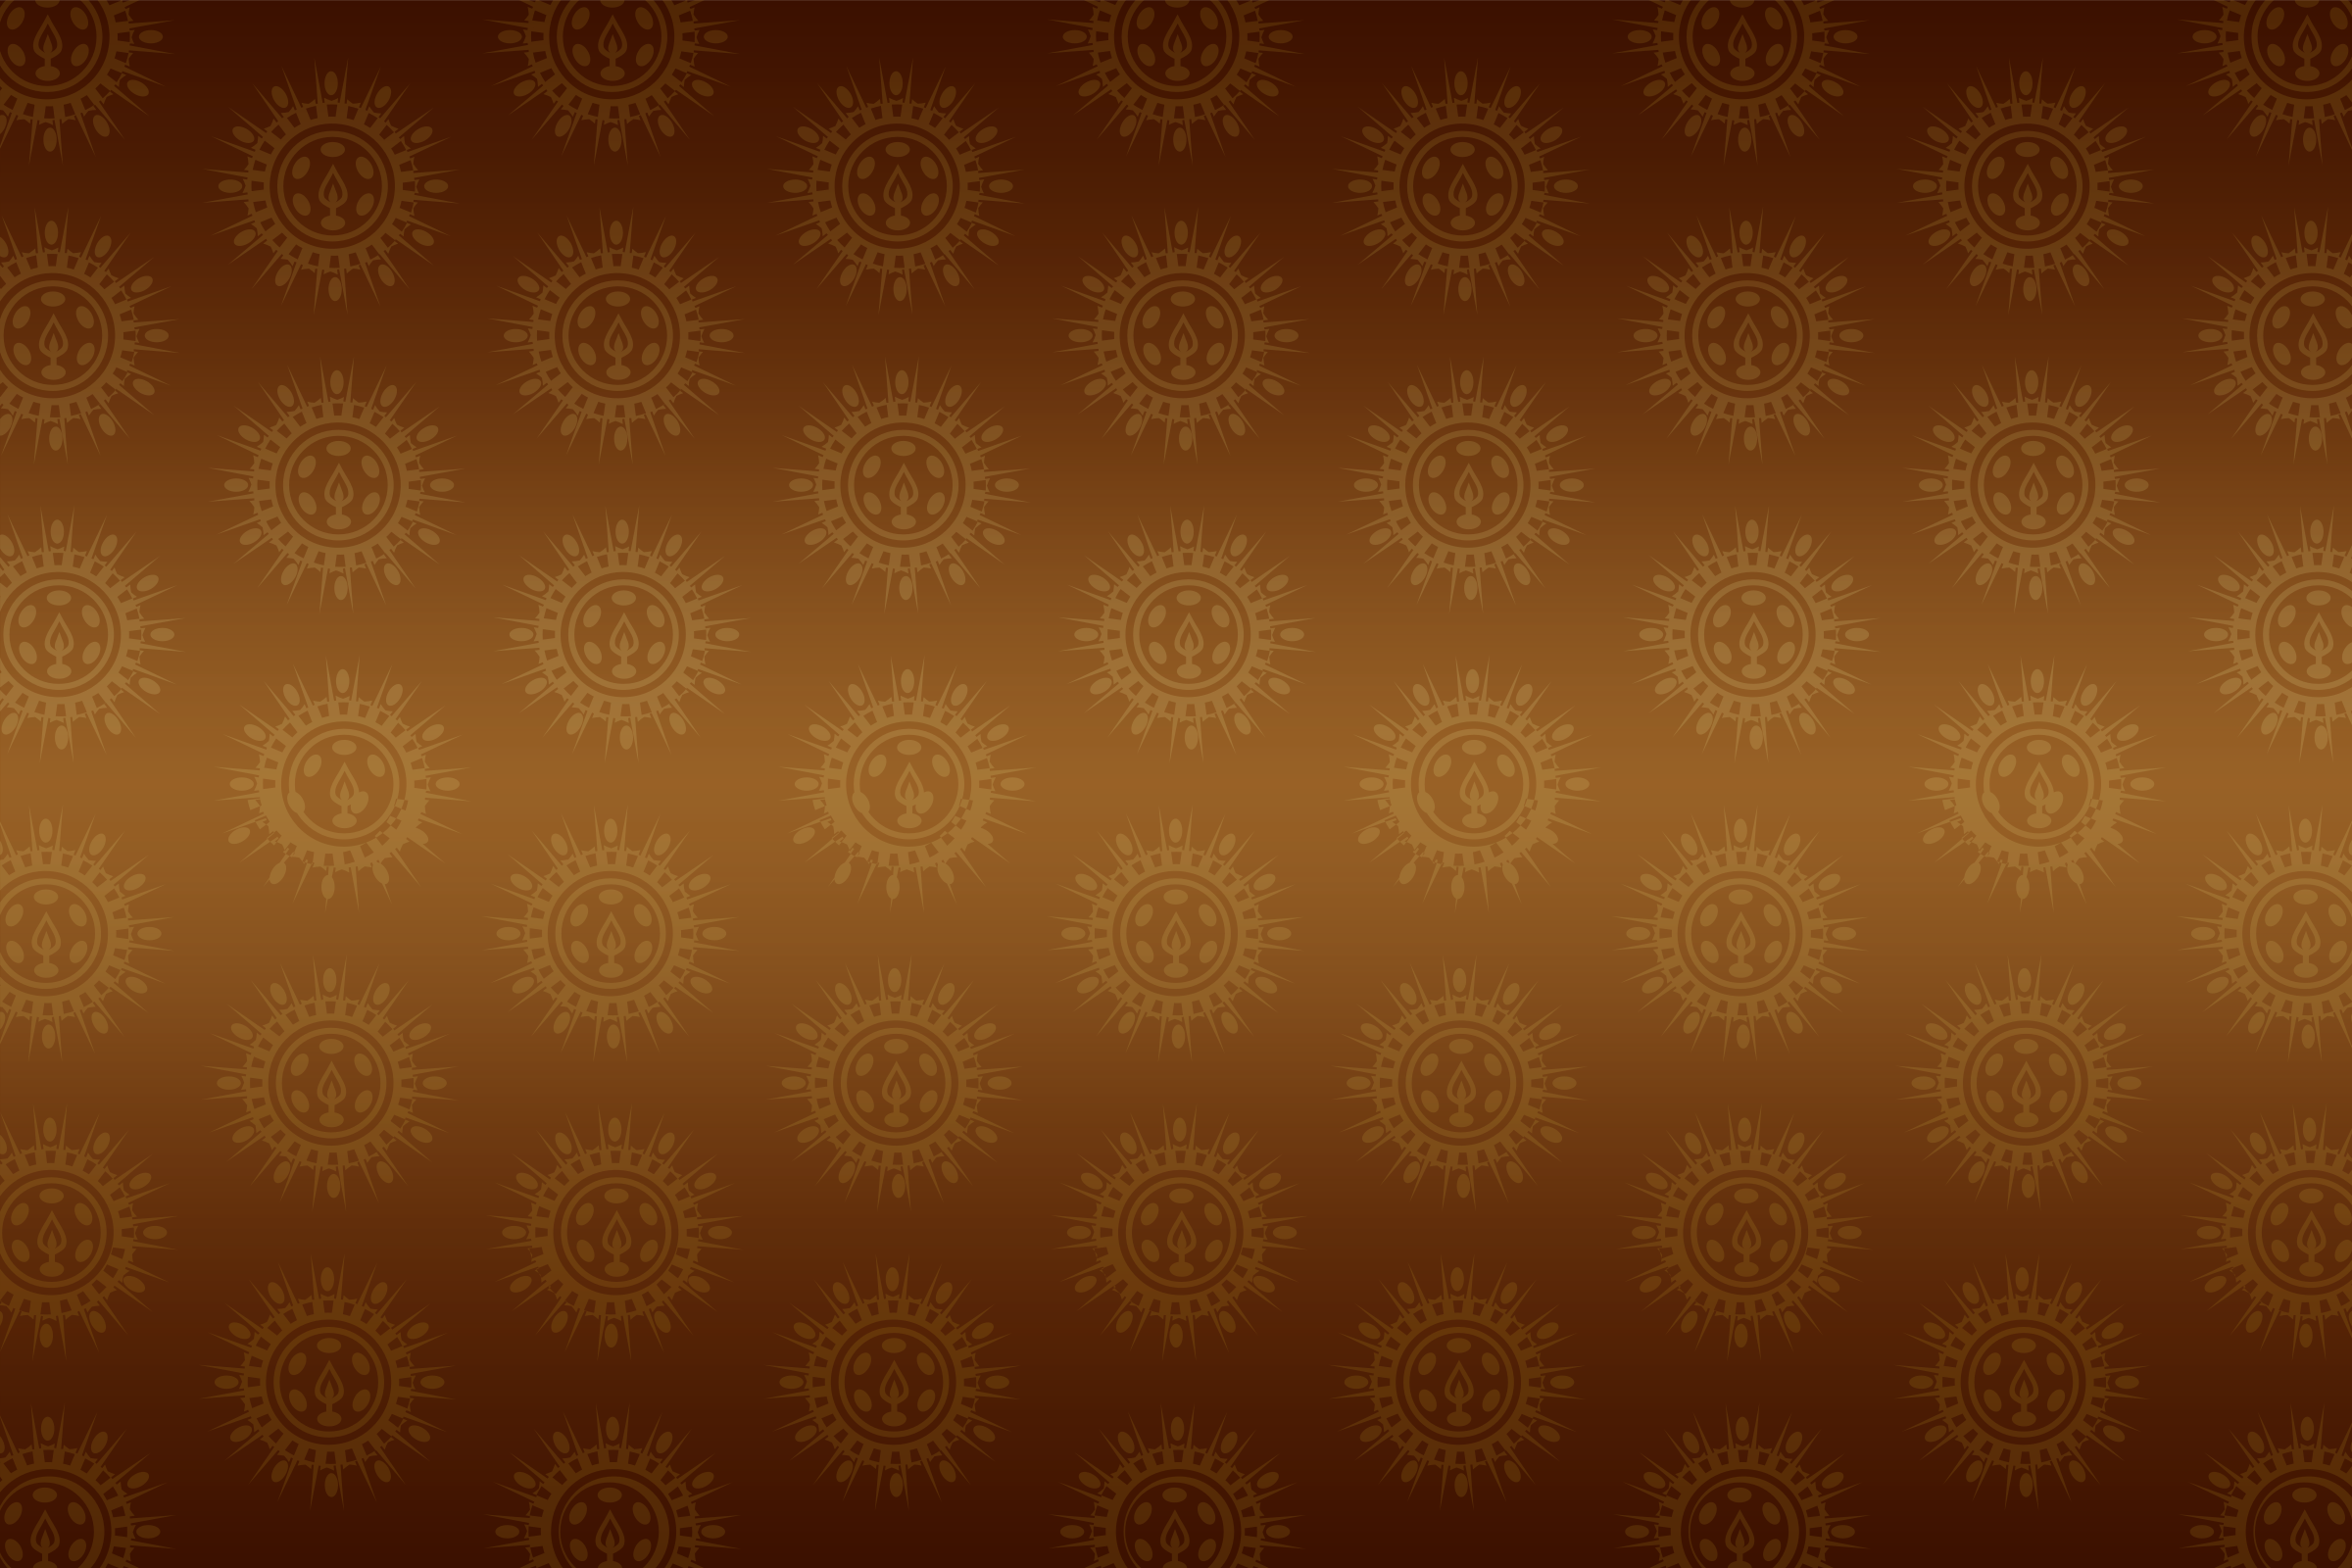 Background Patterns   Bronze by Viscious Speed 2400x1600